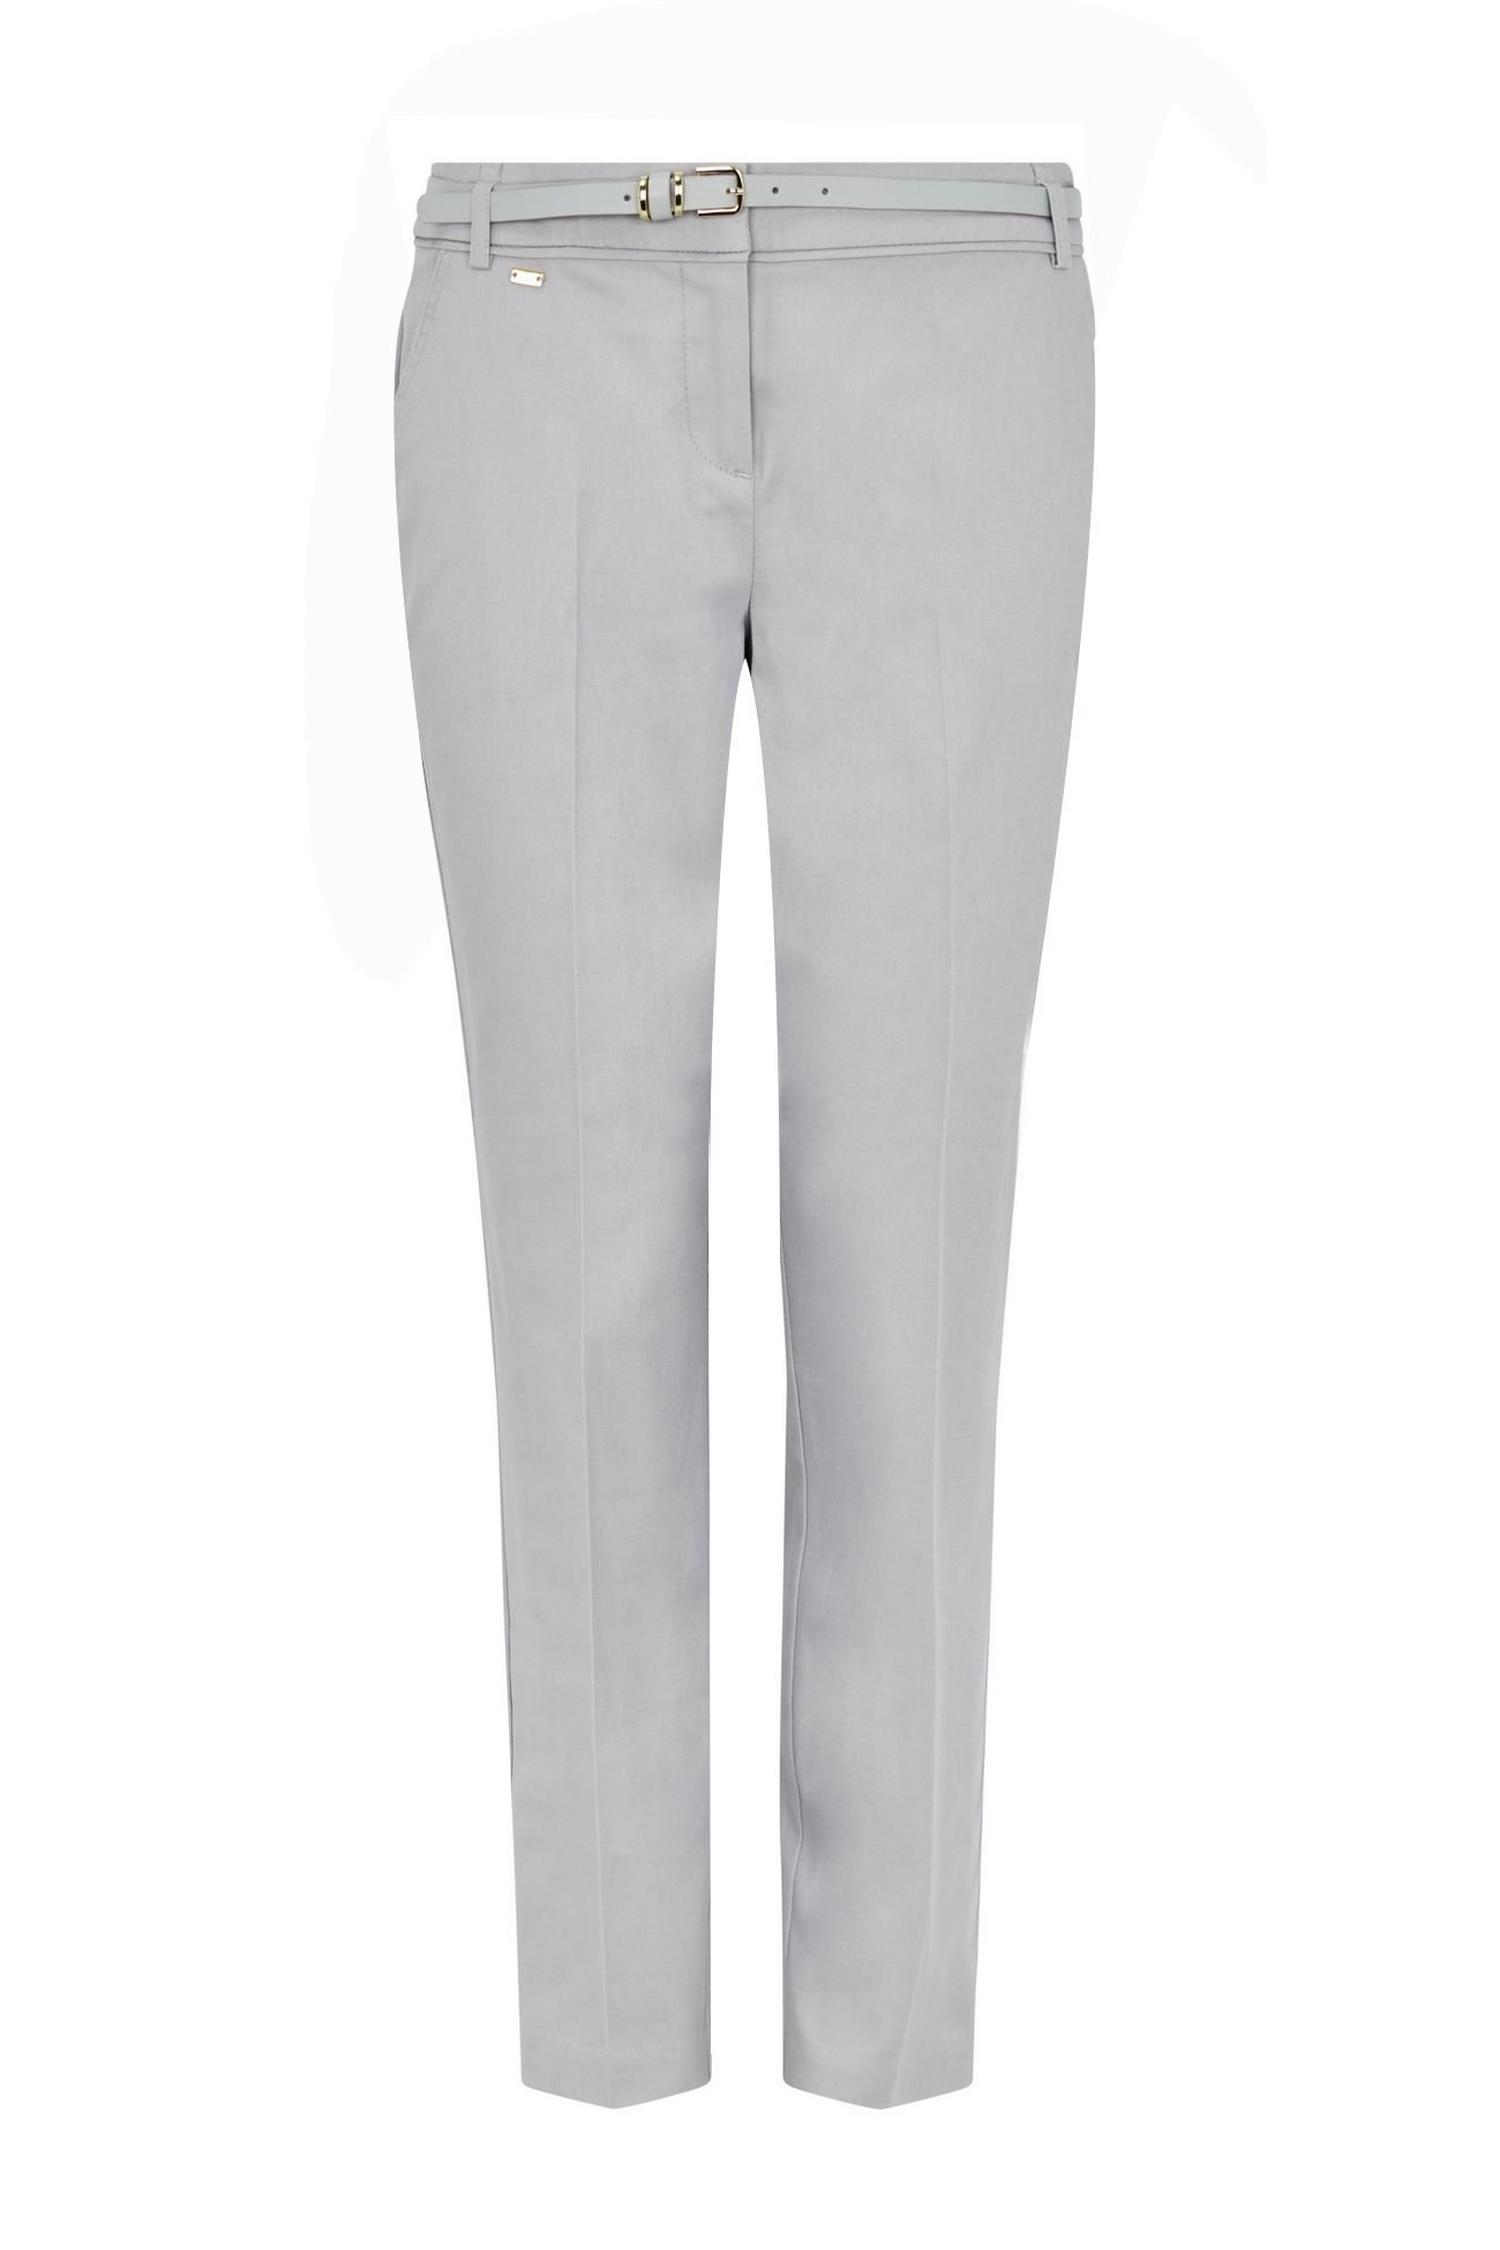 131 Grey Belted Cigarette Trousers image number 4